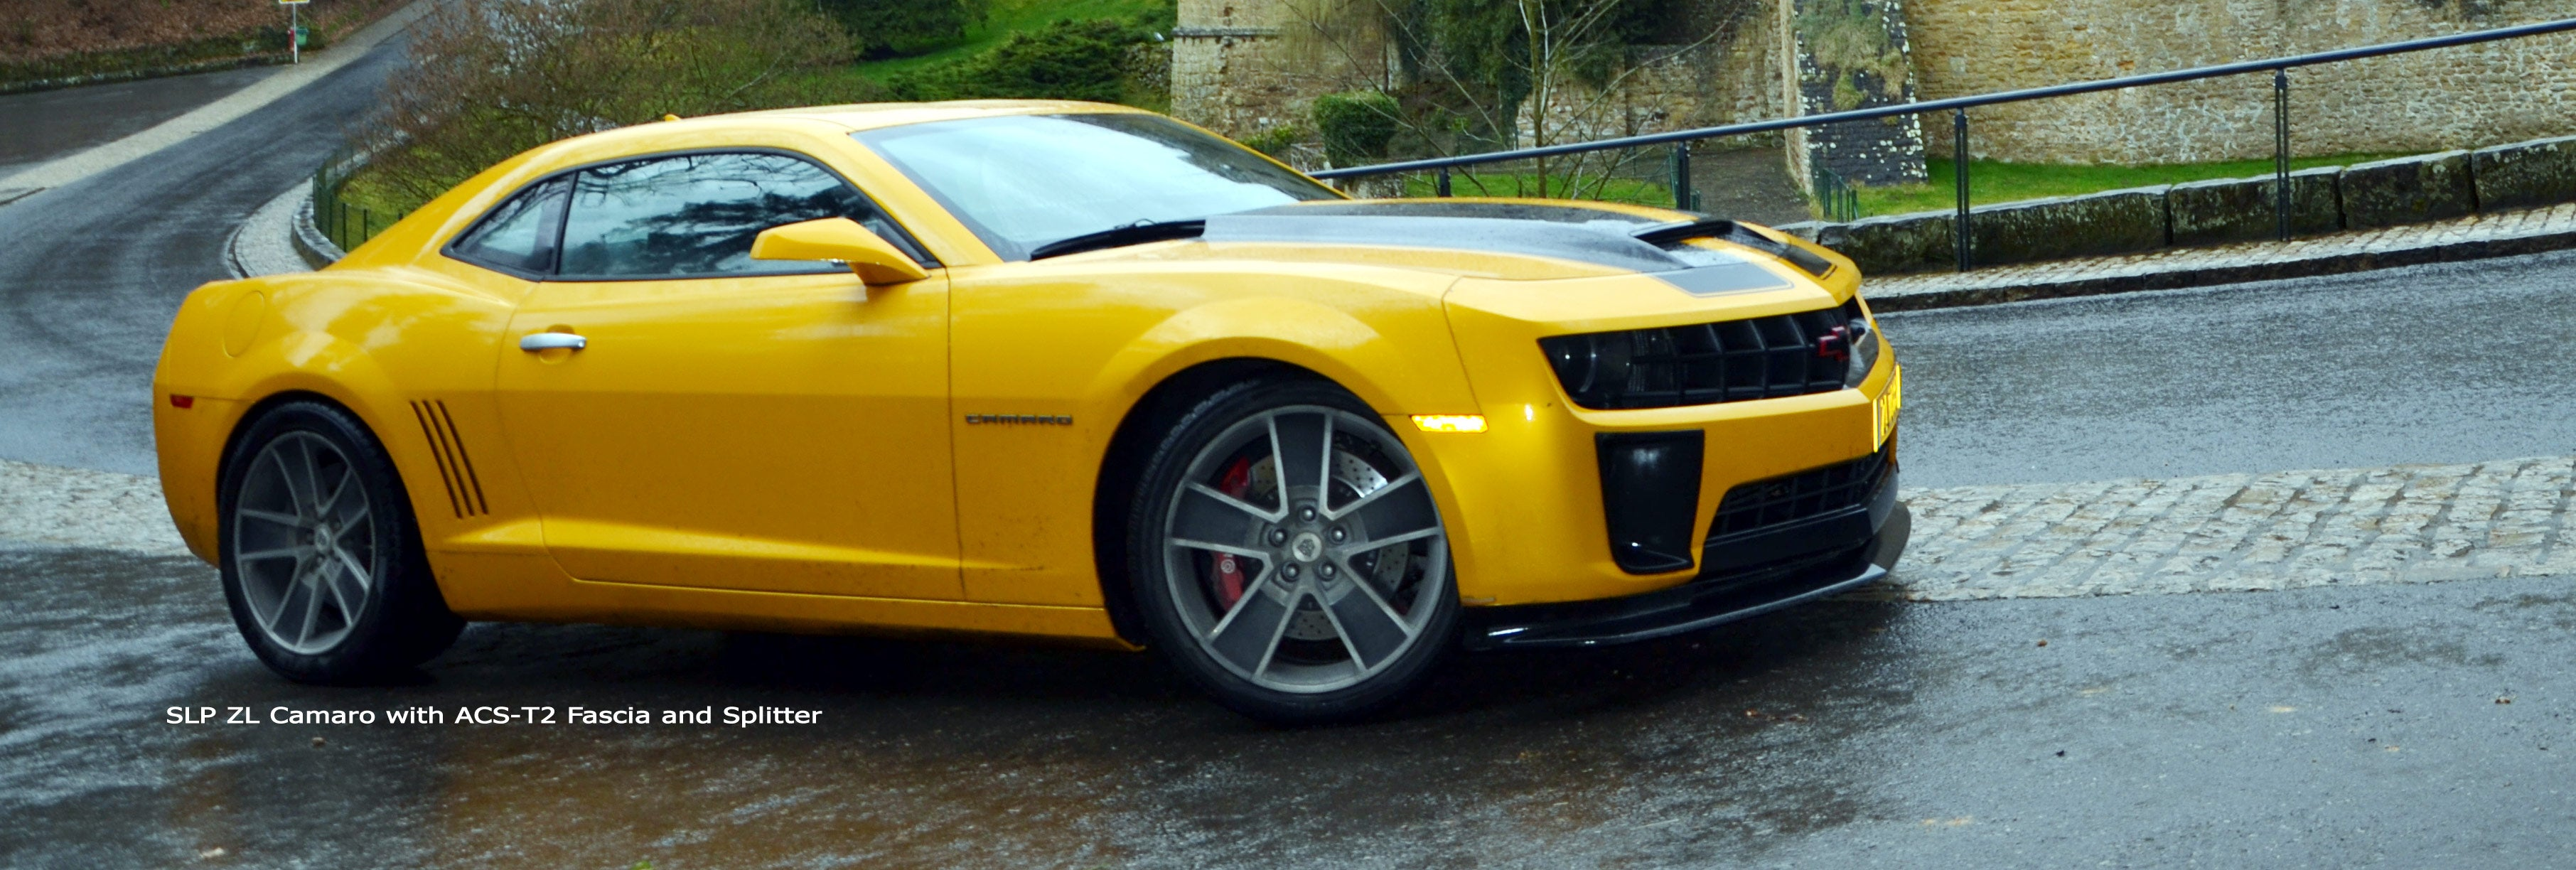 The History of Bumblebee and Camaro